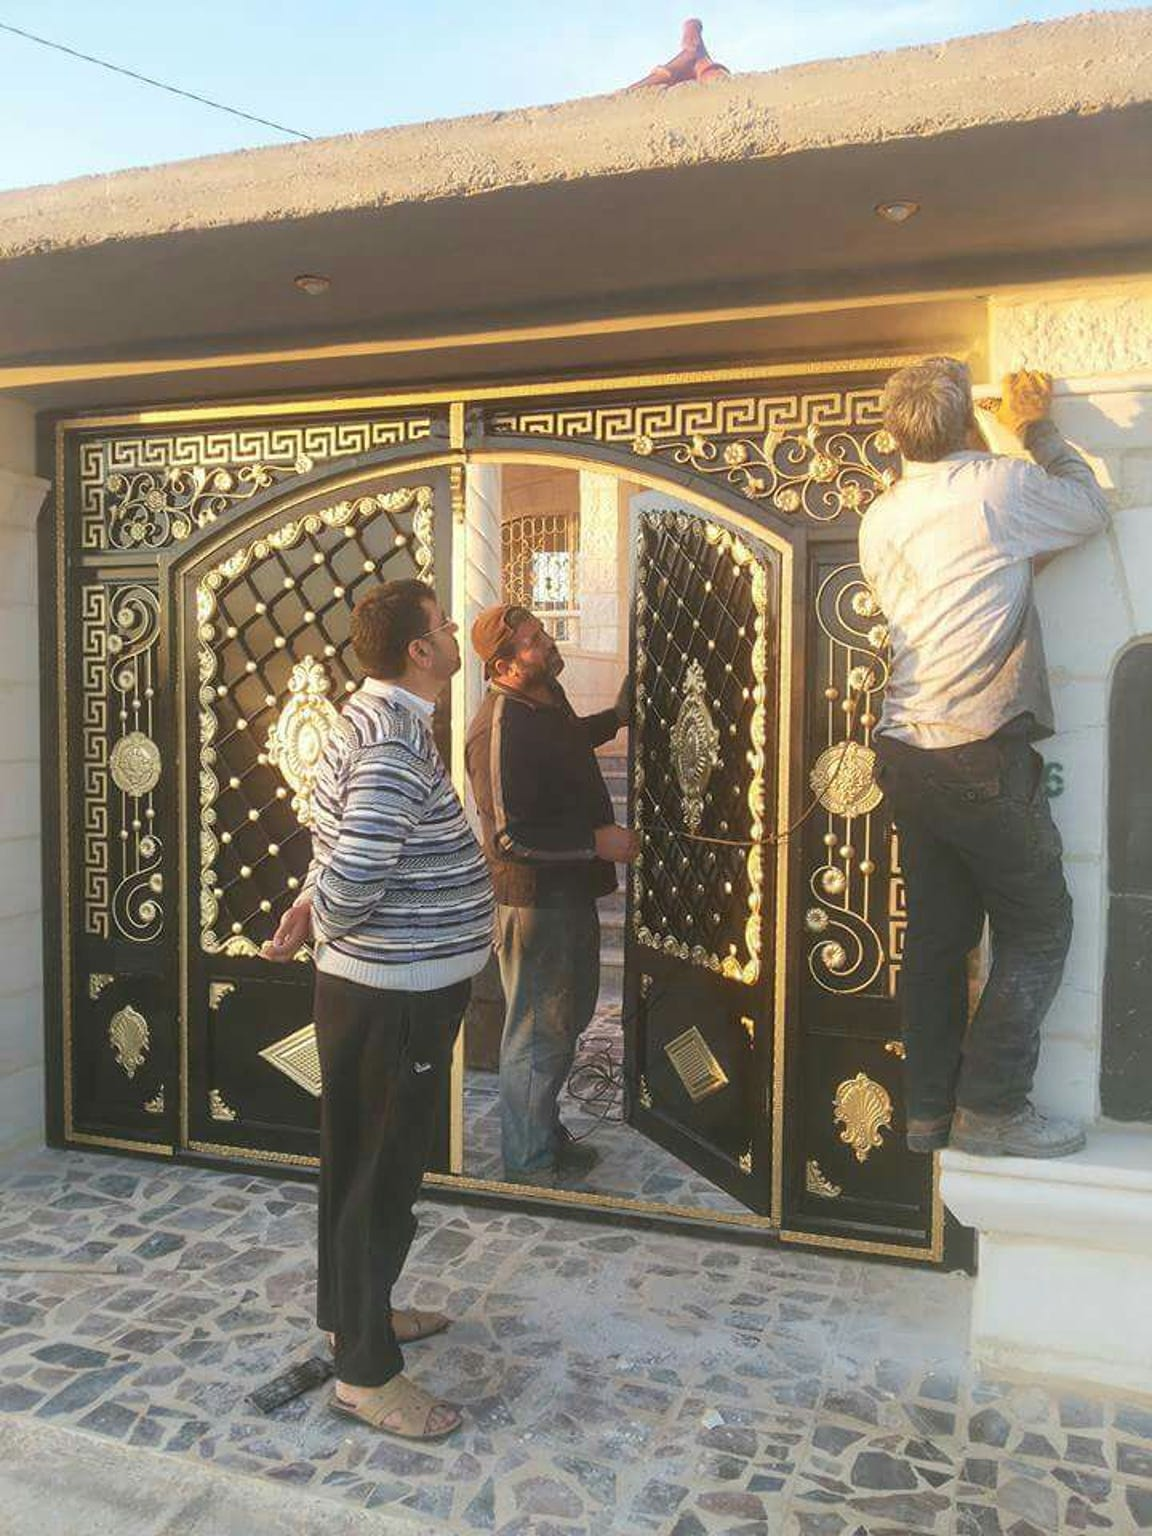 Abdul Mehsen Almasri, middle, works on a gold color-plated